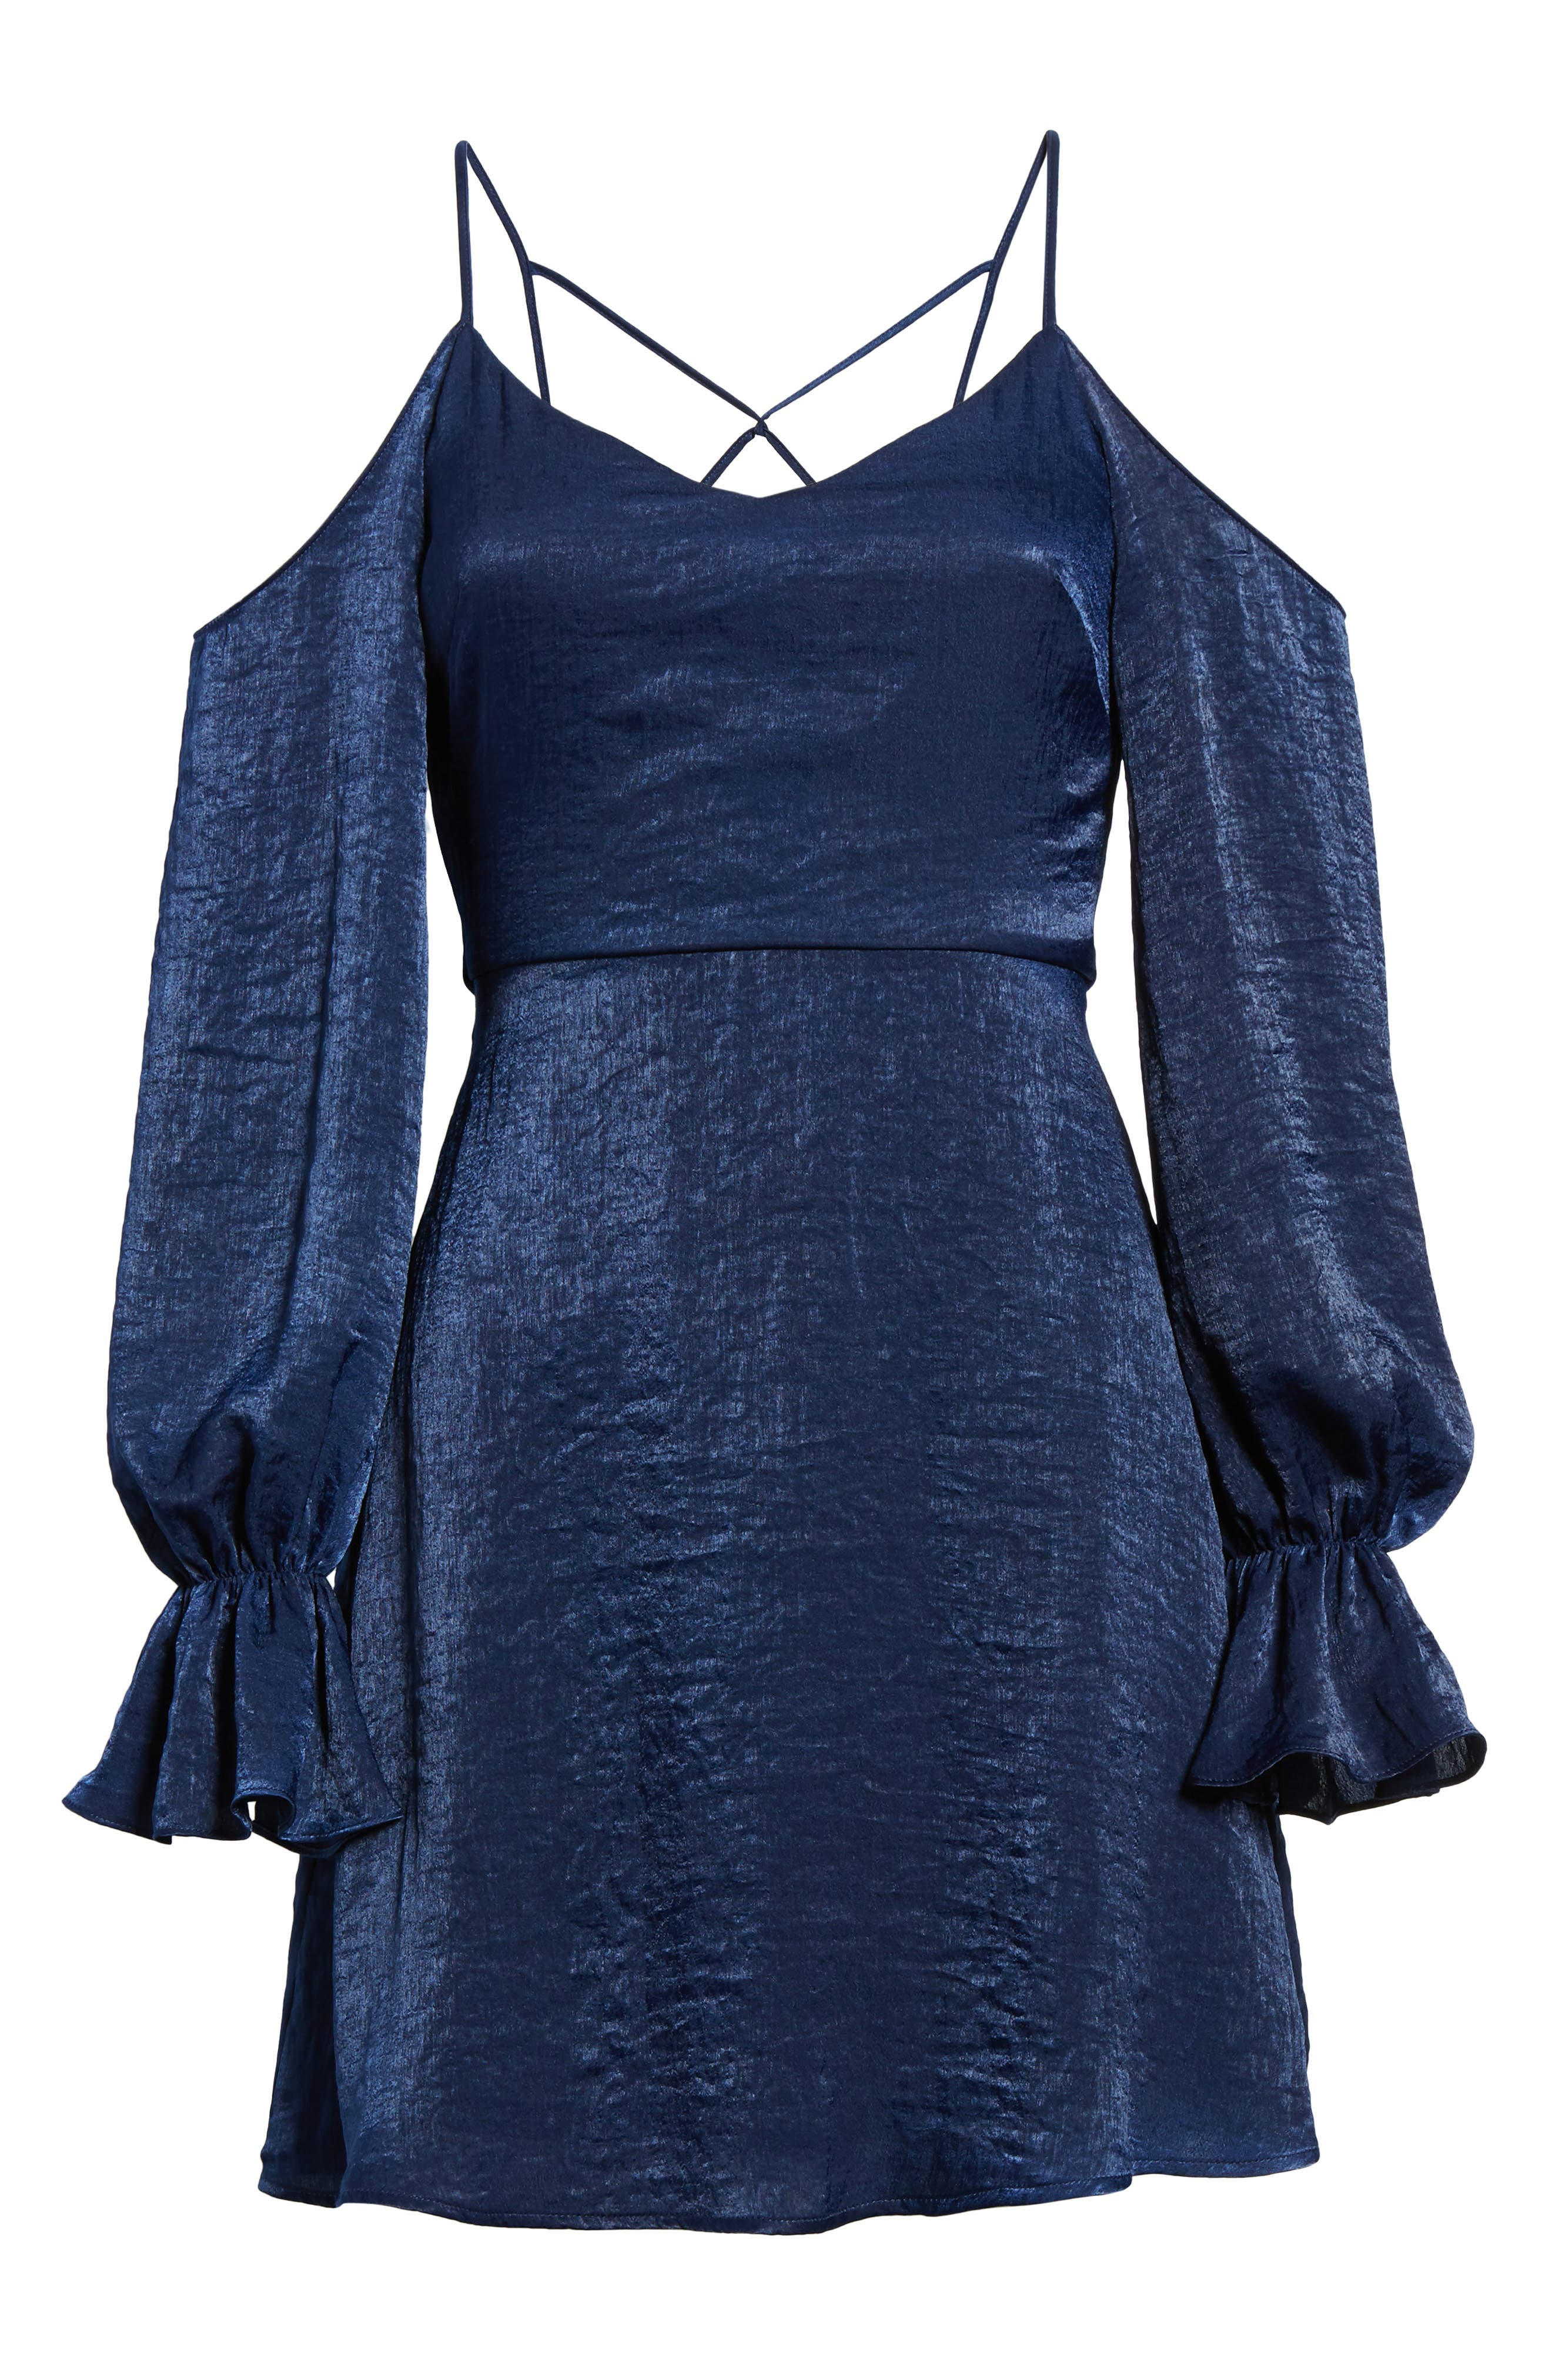 Satin Cold Shoulder Dress,                             Alternate thumbnail 6, color,                             Navy